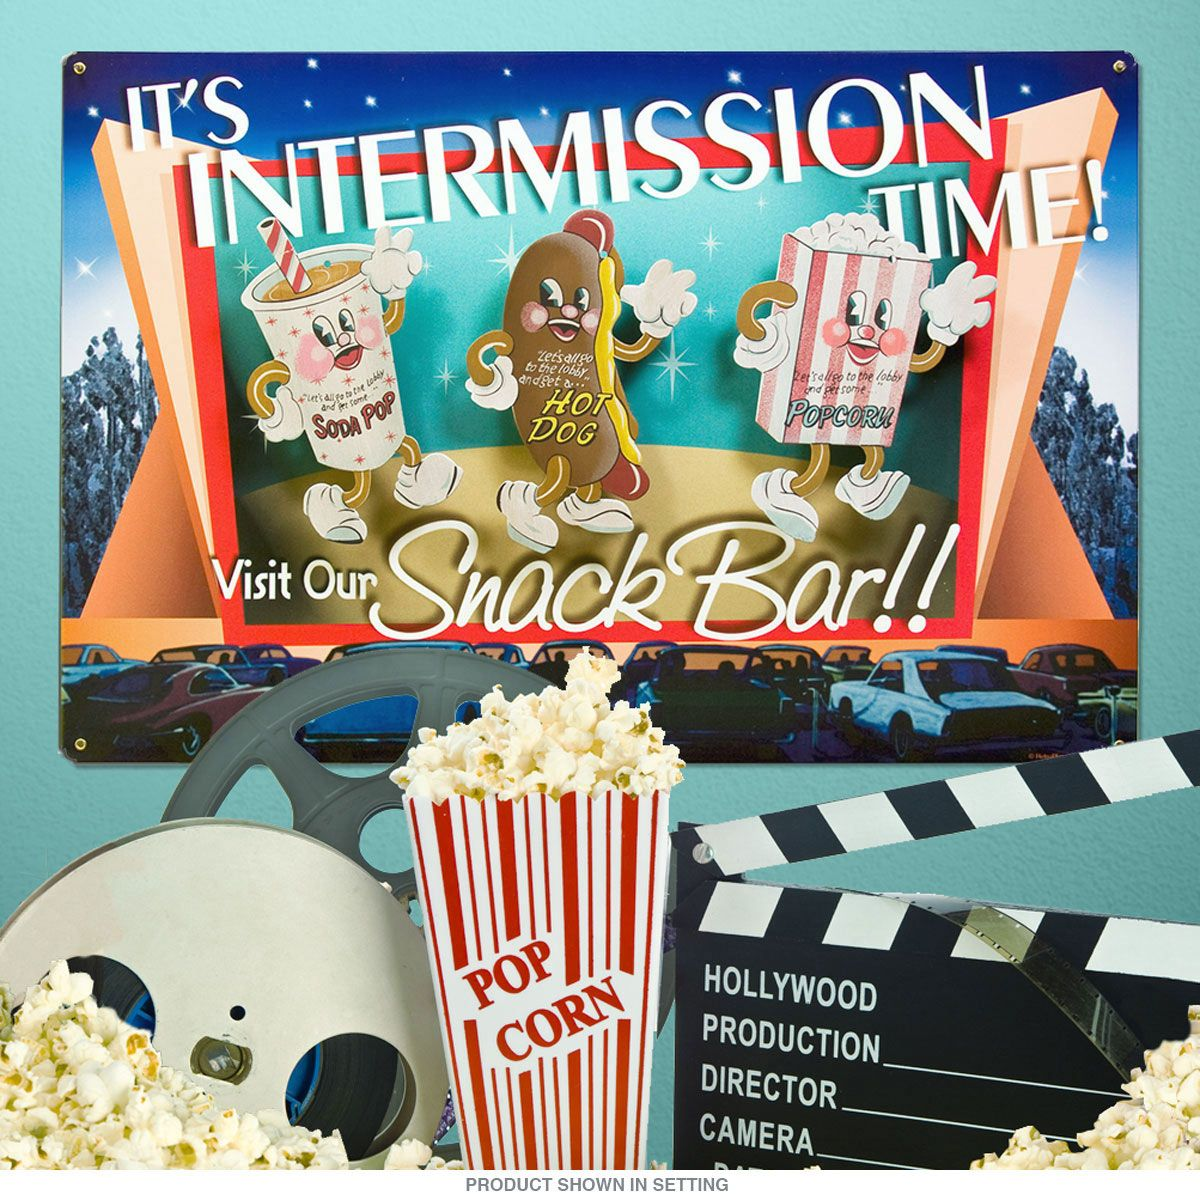 Theater Room Snack Bar: Dancing Snacks Theater Intermission Time Sign Set